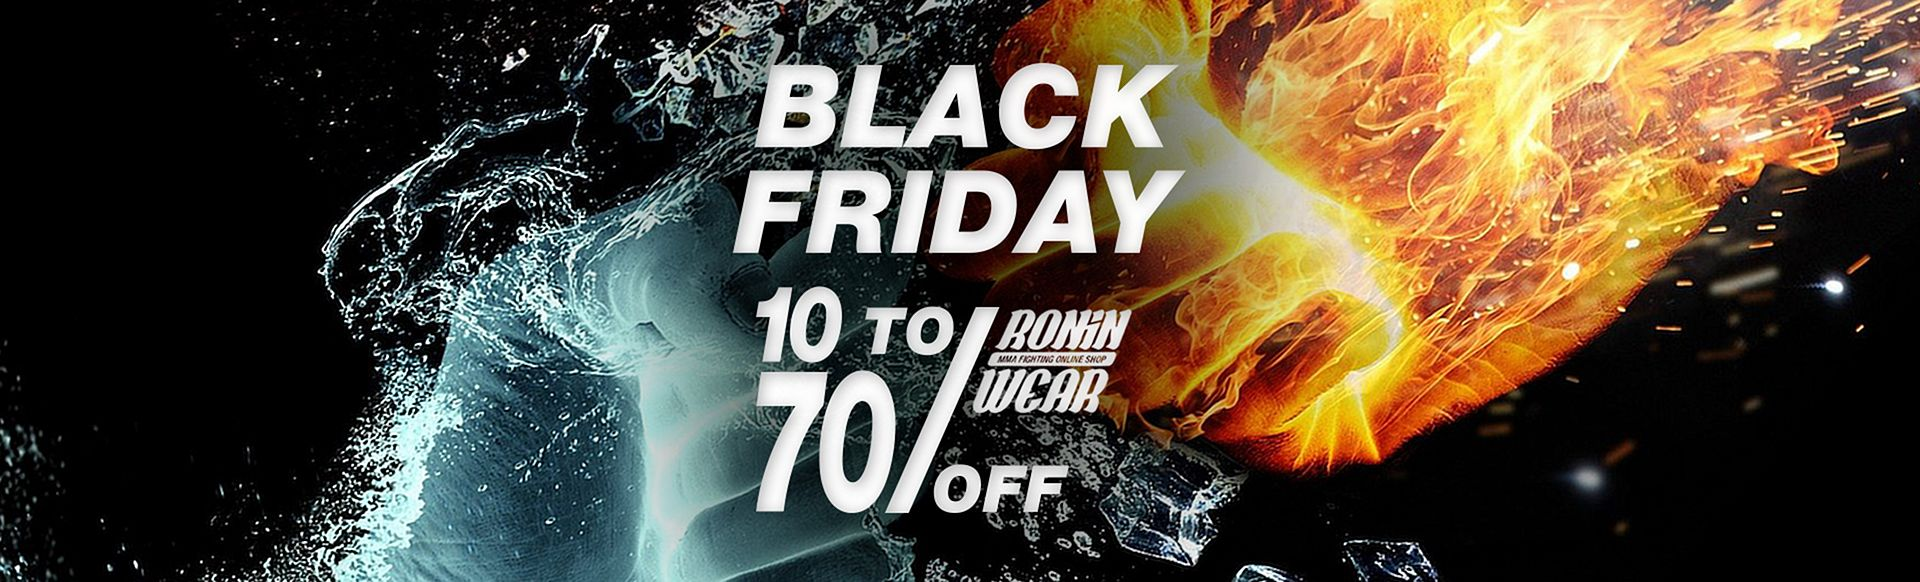 Black Friday Roninwear! 20% to 50% discount on selected products